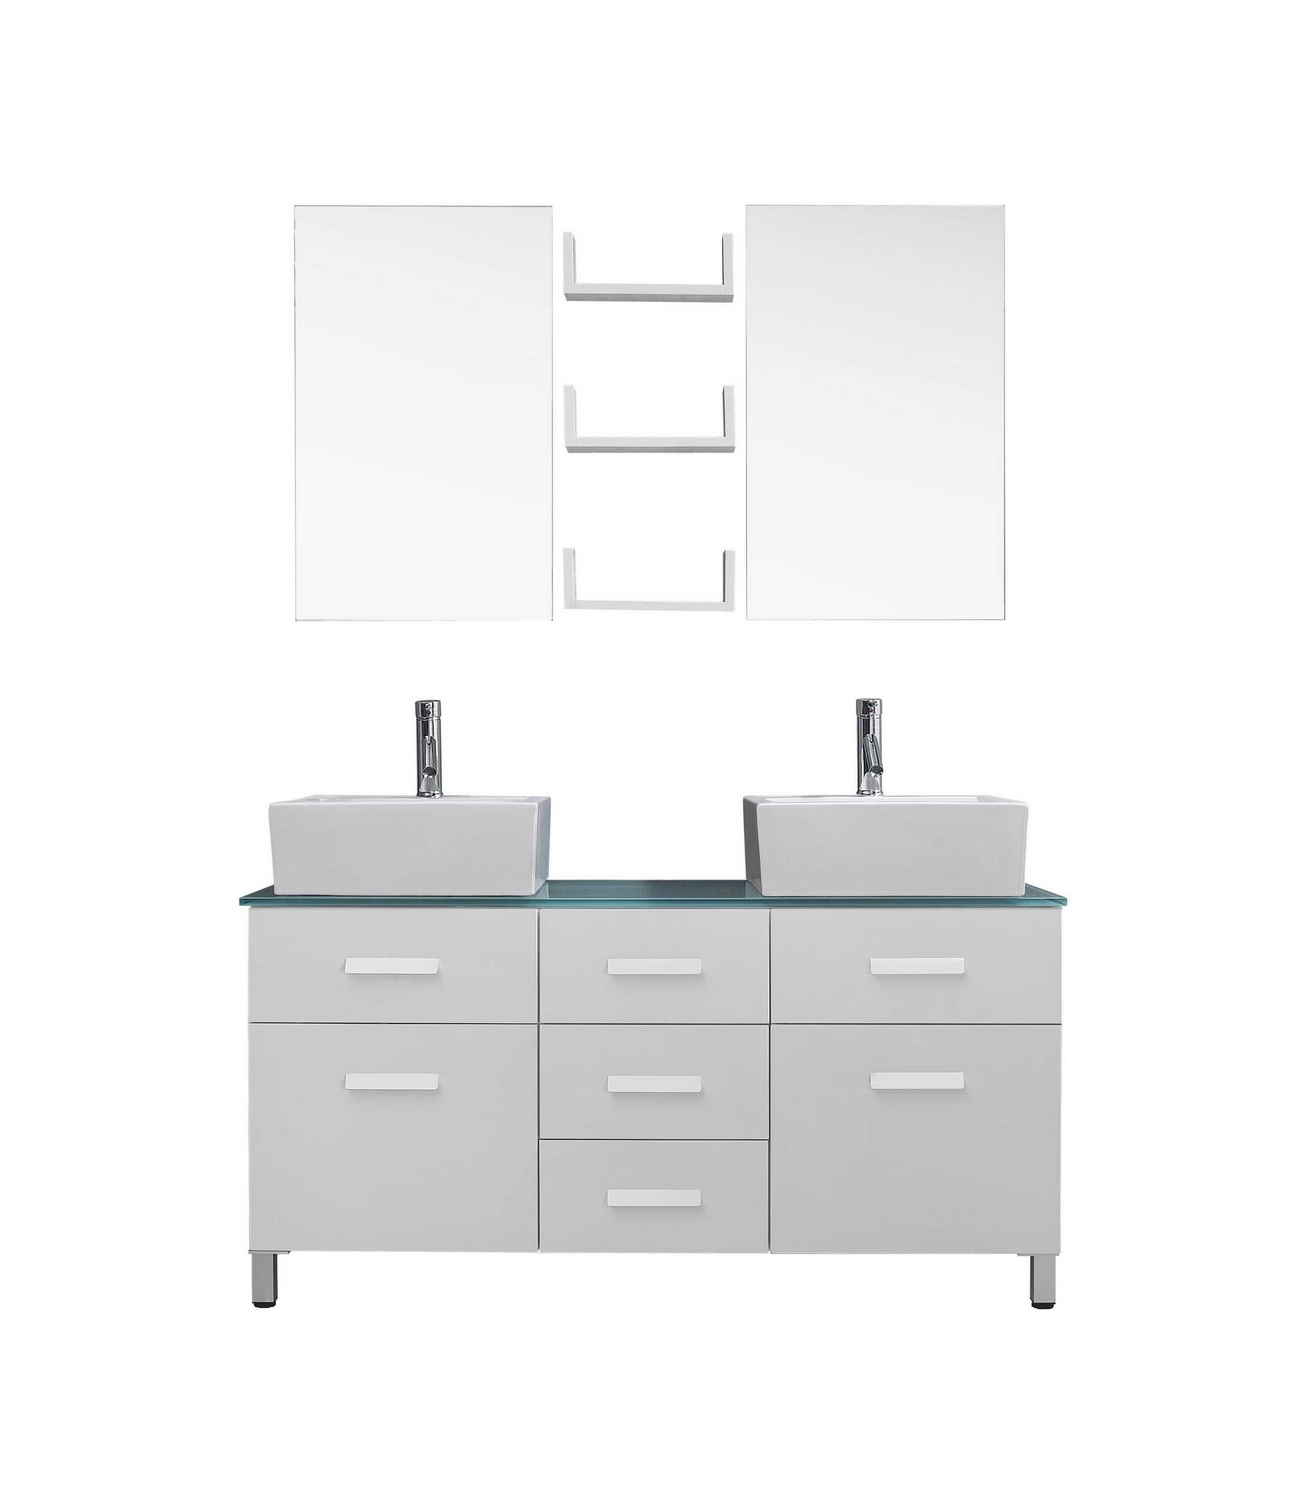 "Virtu USA Maybell 56"" Double Bathroom Vanity Cabinet Set in WhiteTempere"